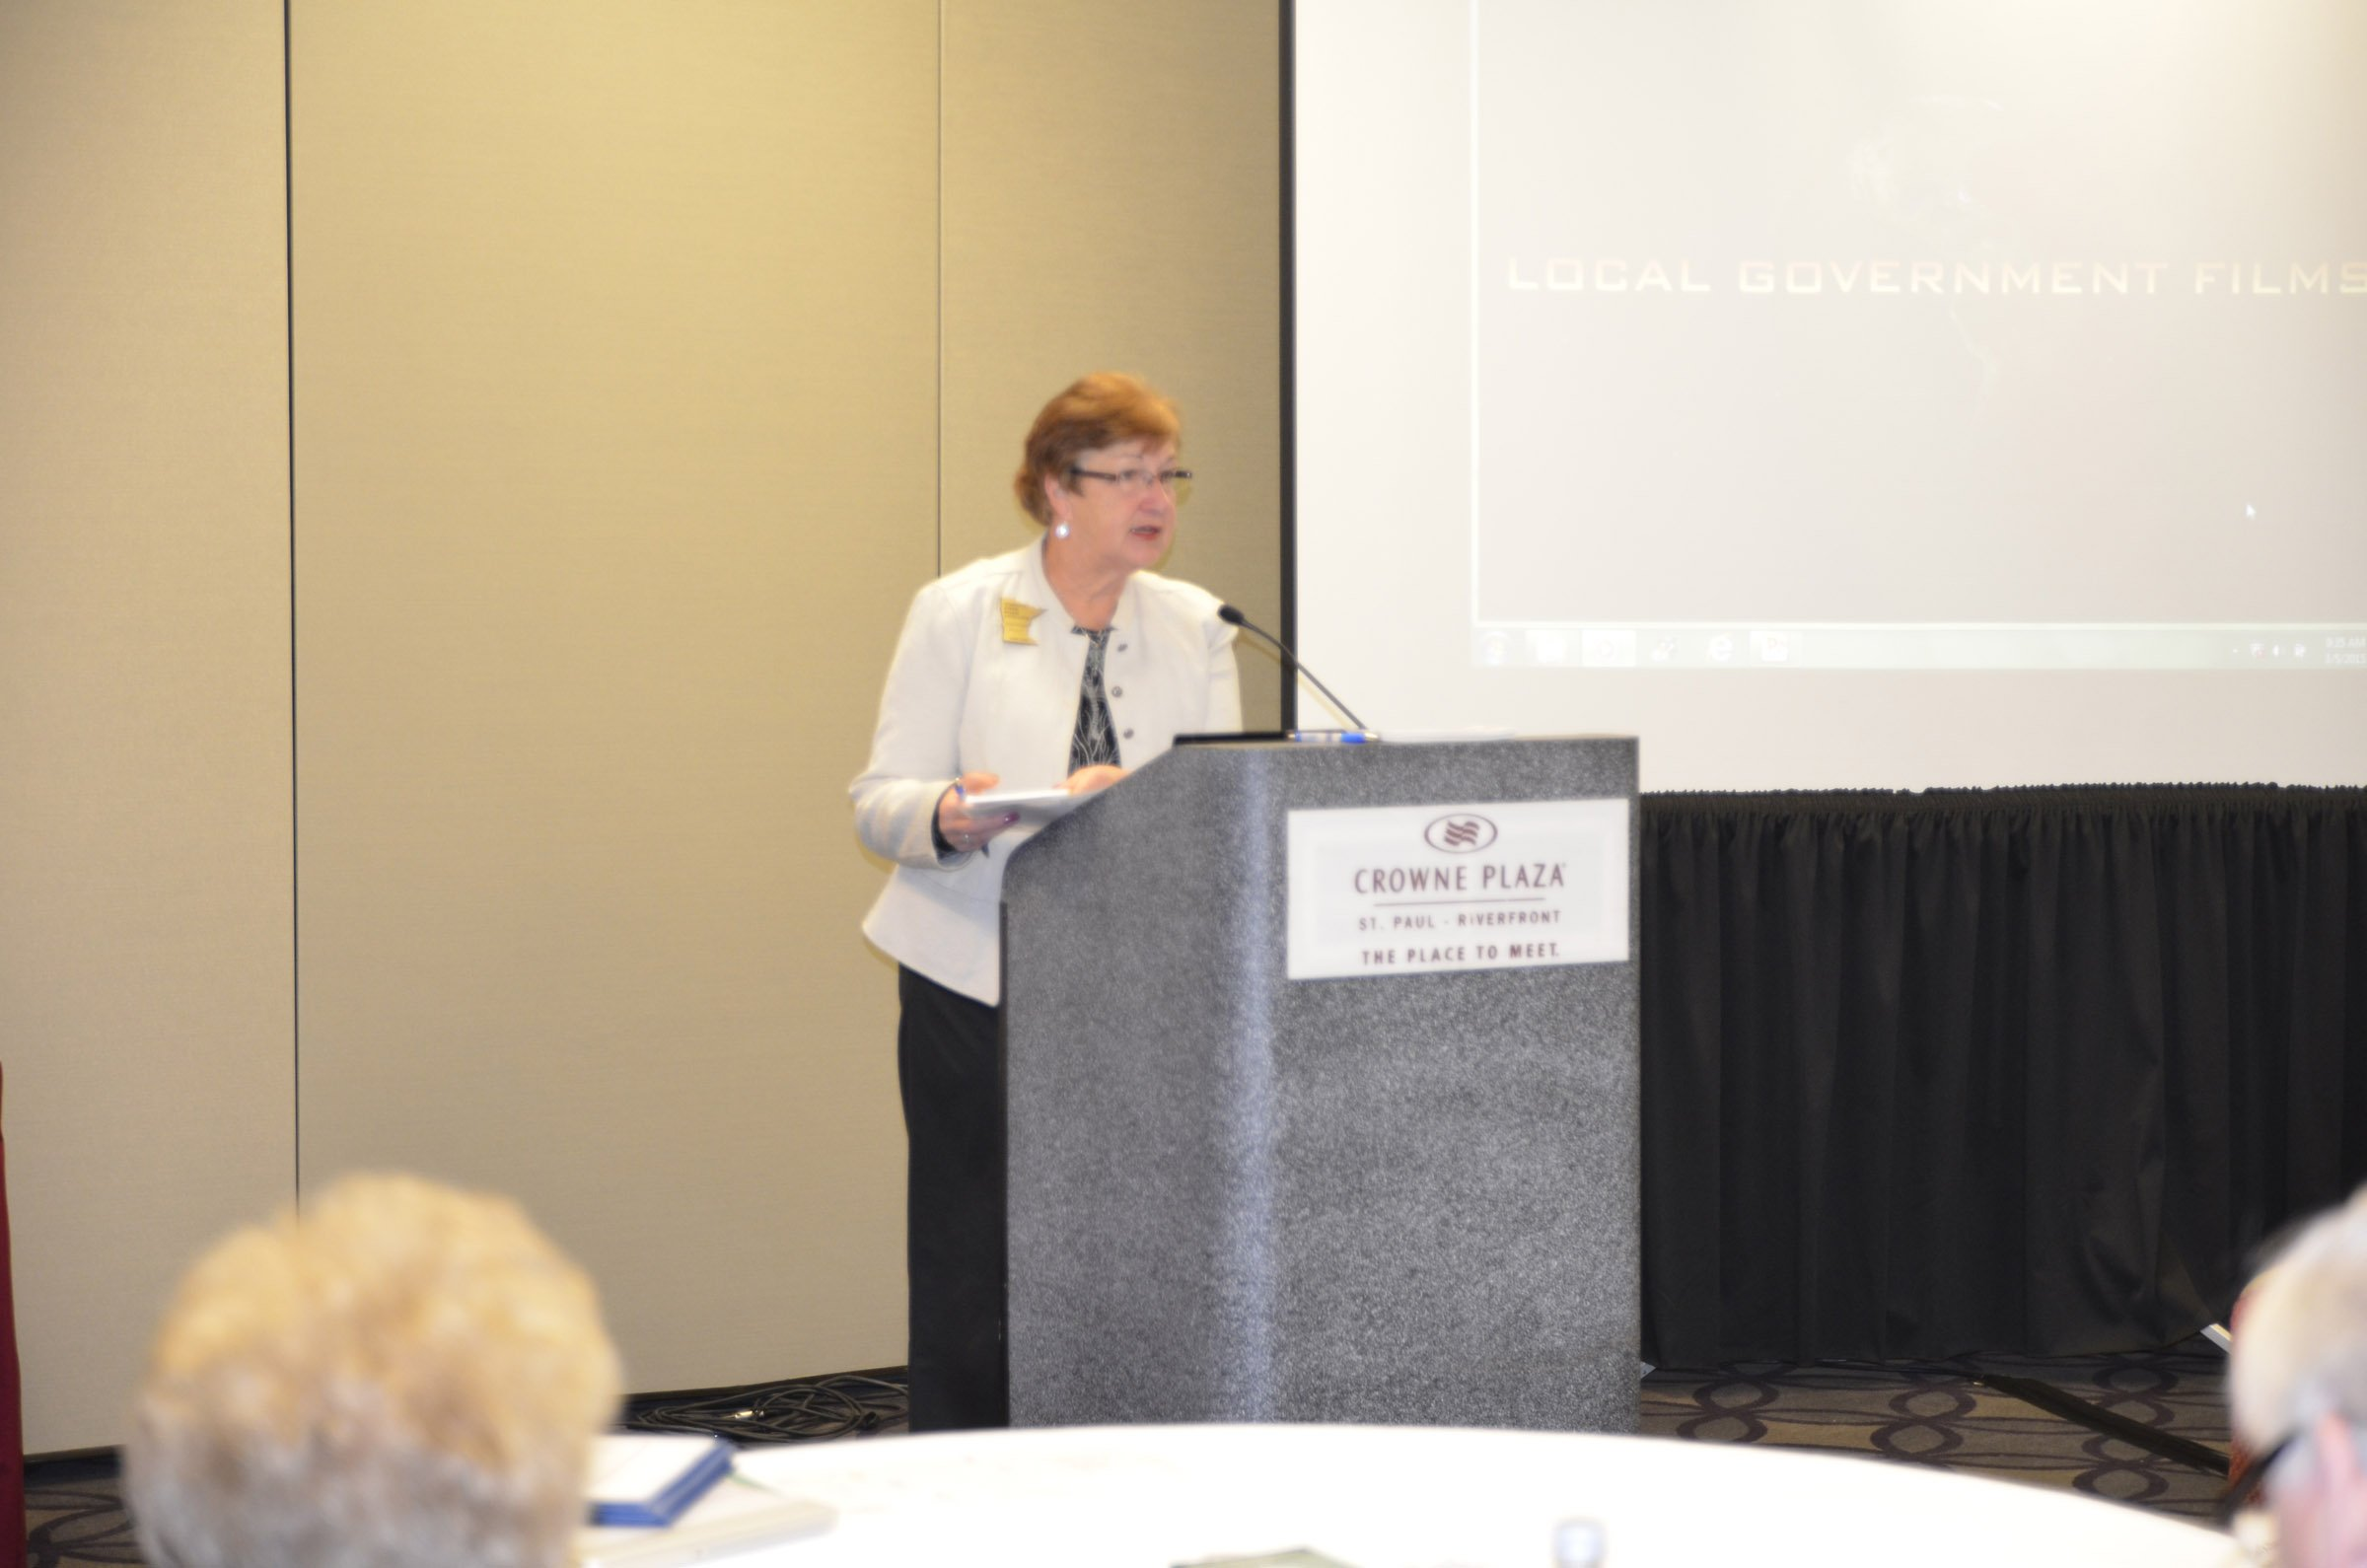 MSBA Board Director Deb Pauly (Jordan) tells members about discussing school lunch and nutrition issues with federal legislators during her recent advocacy trip to Washington, D.C.